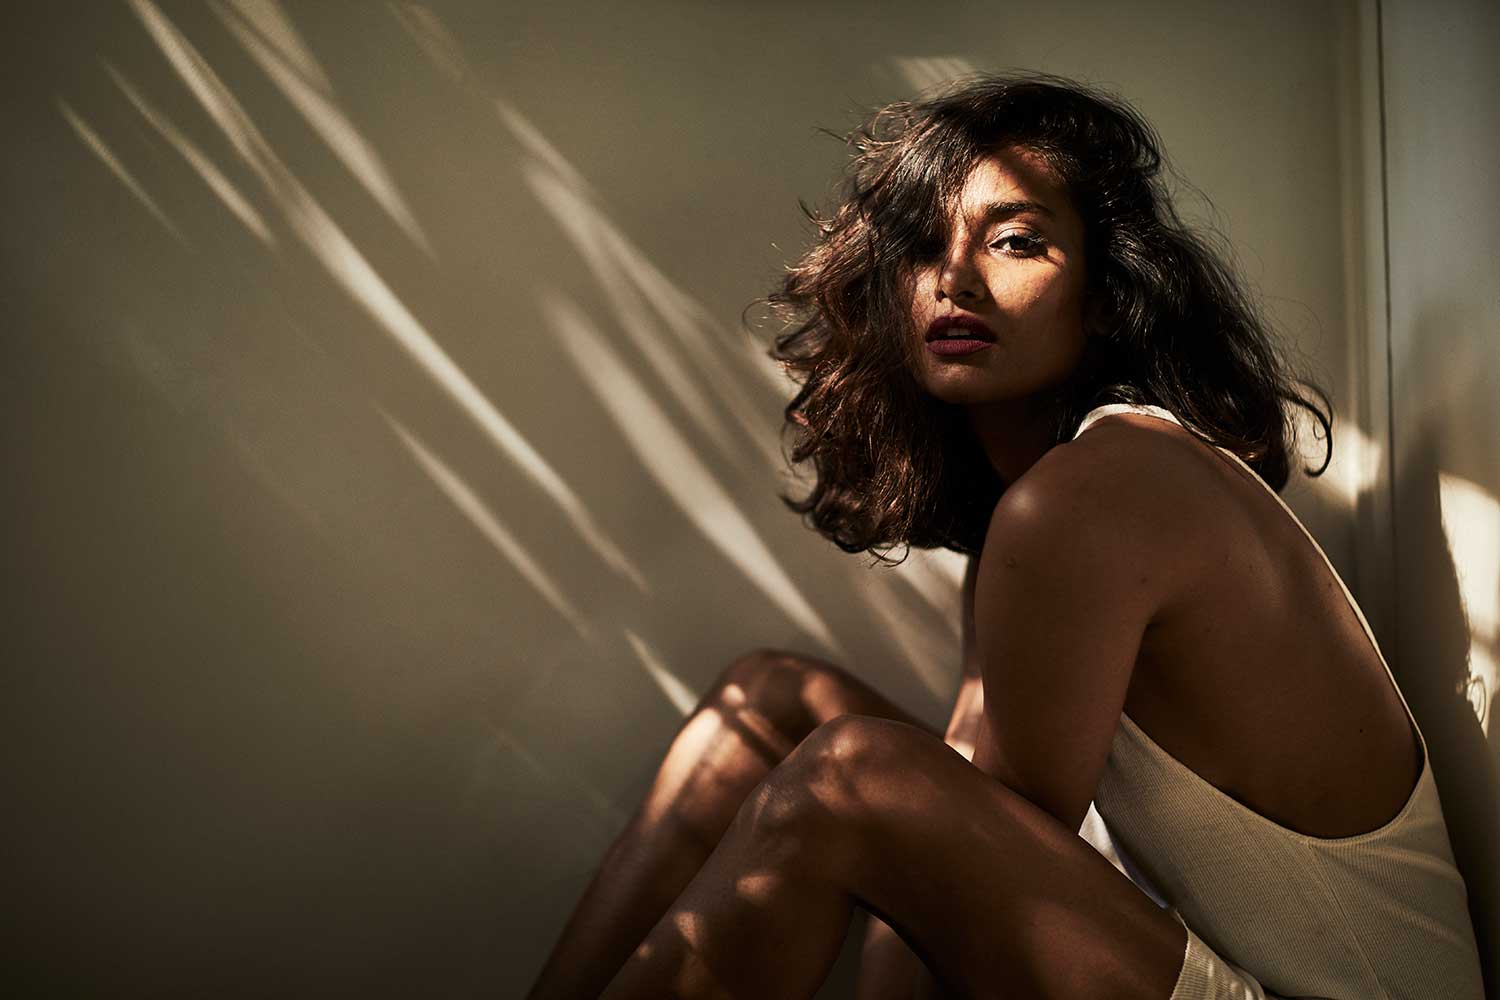 currentMood interviews model nidhi sunil for no filter and talks about colourism in india. skin colour, dark skin discrimination, dark is beautiful